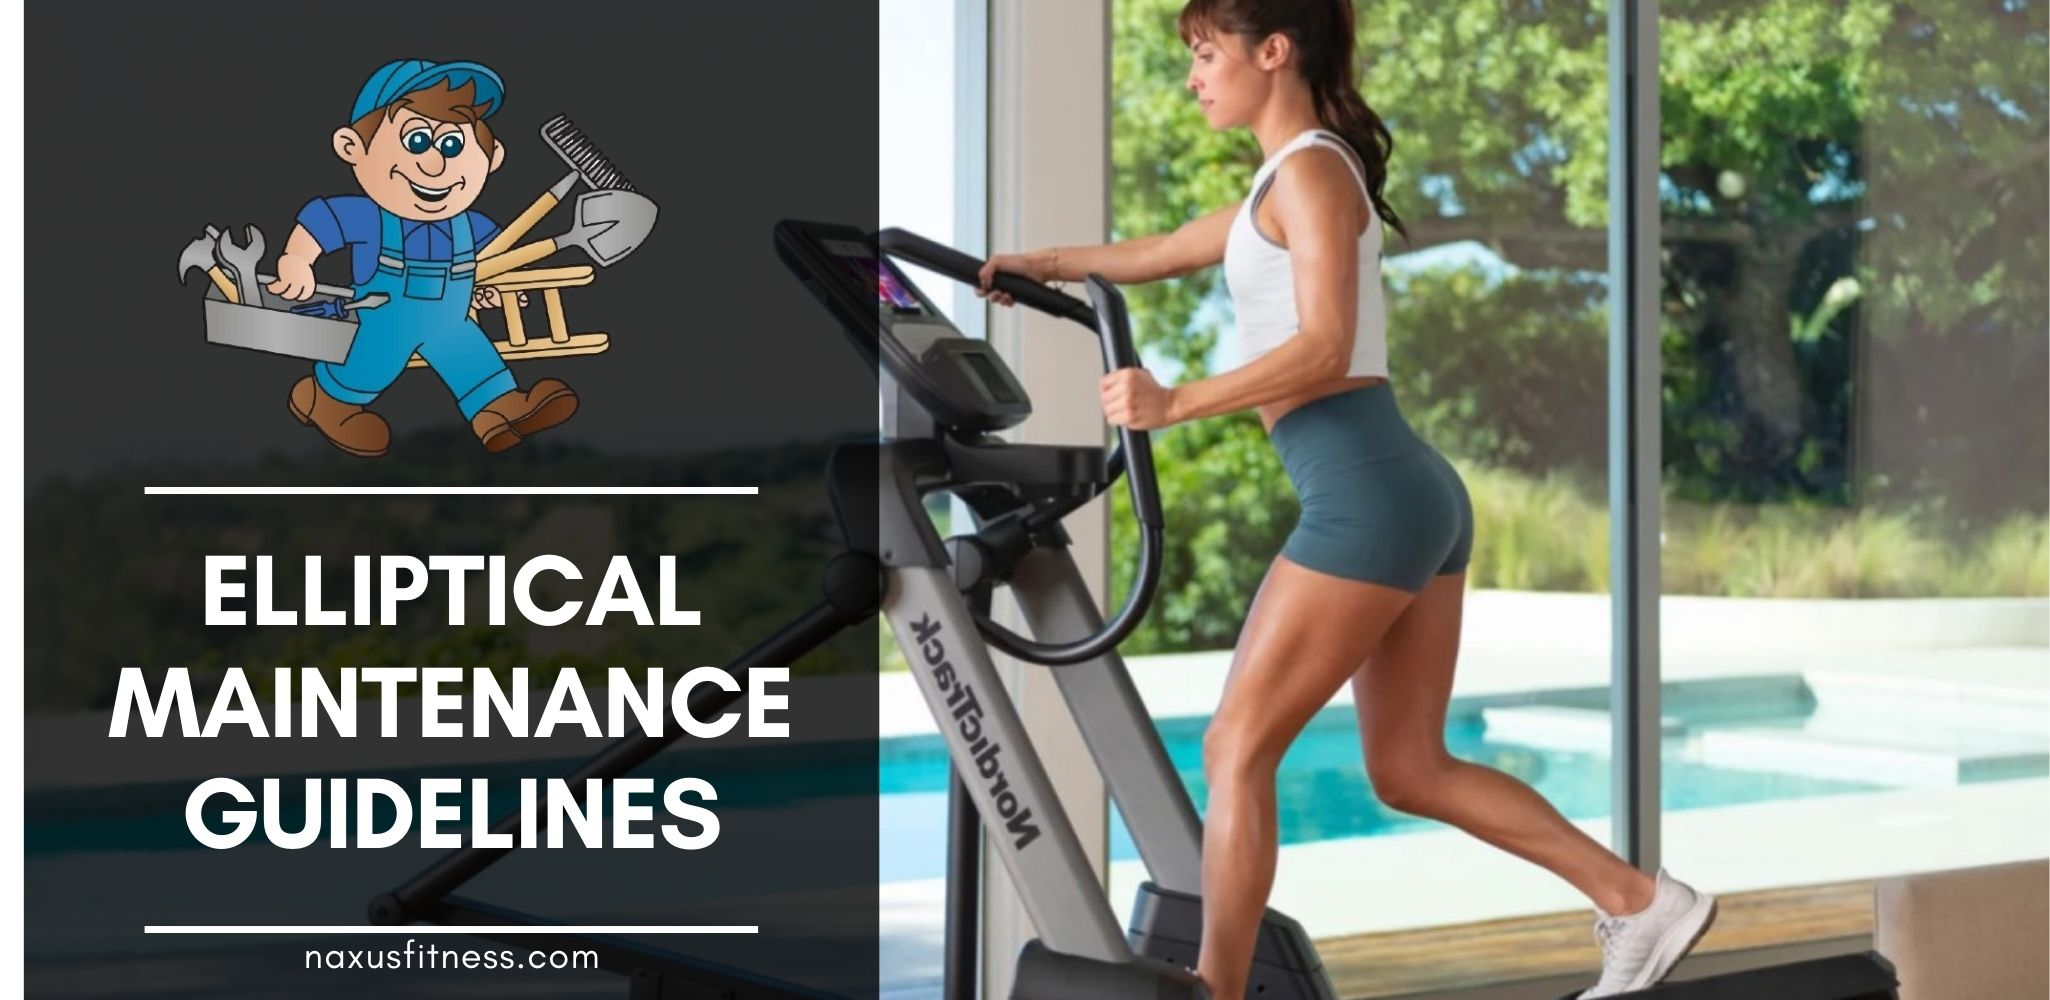 Elliptical Maintenance Guidelines